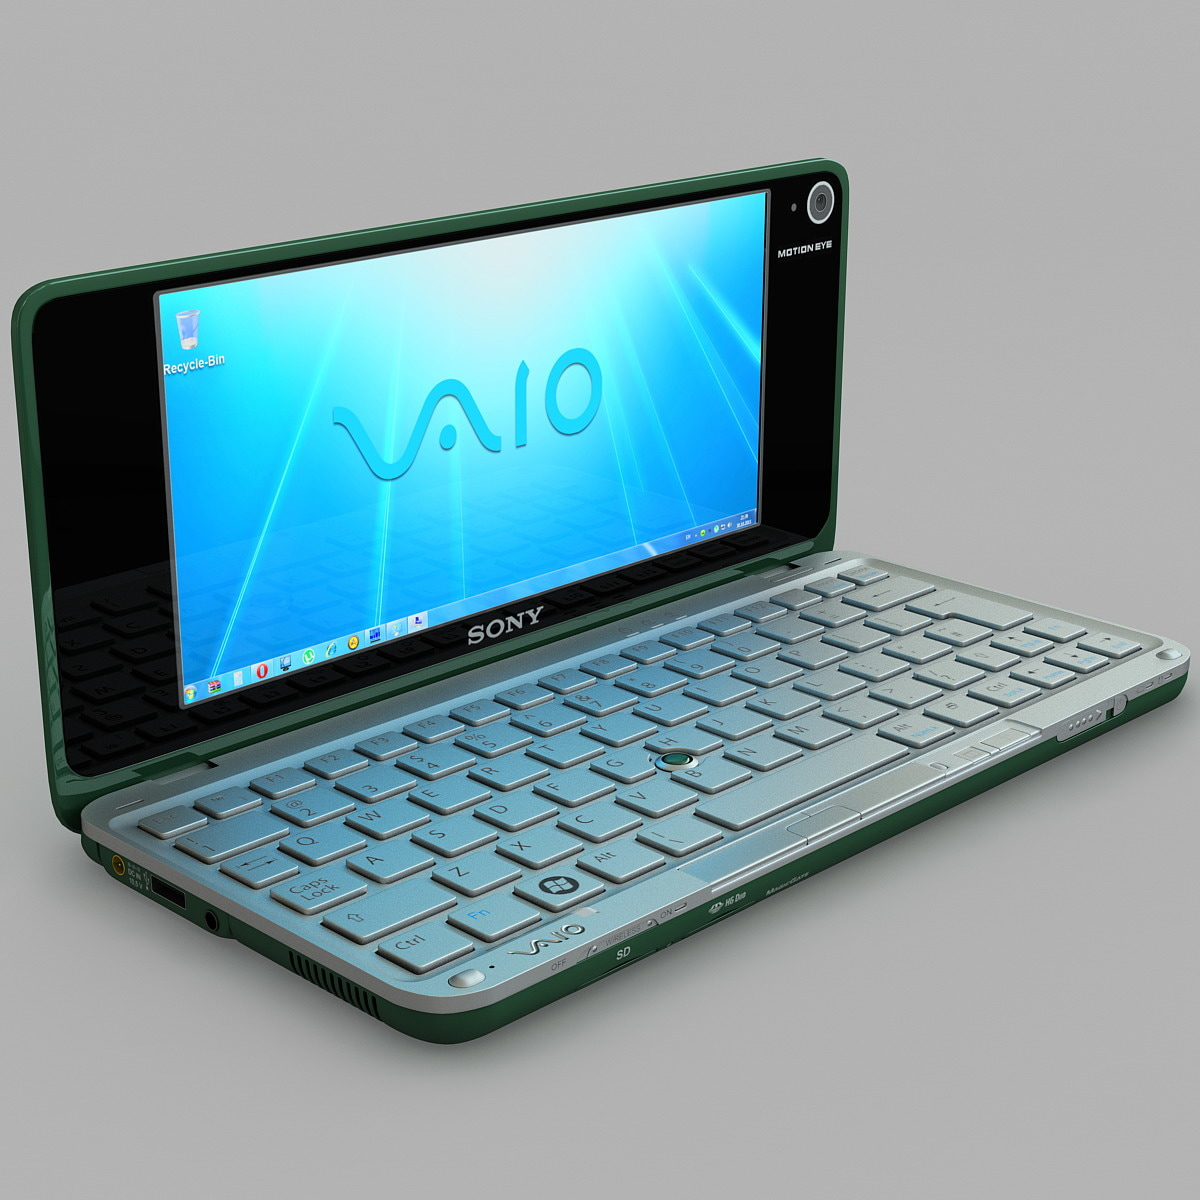 Laptop_Sony_VAIO_P_Green_005.jpg